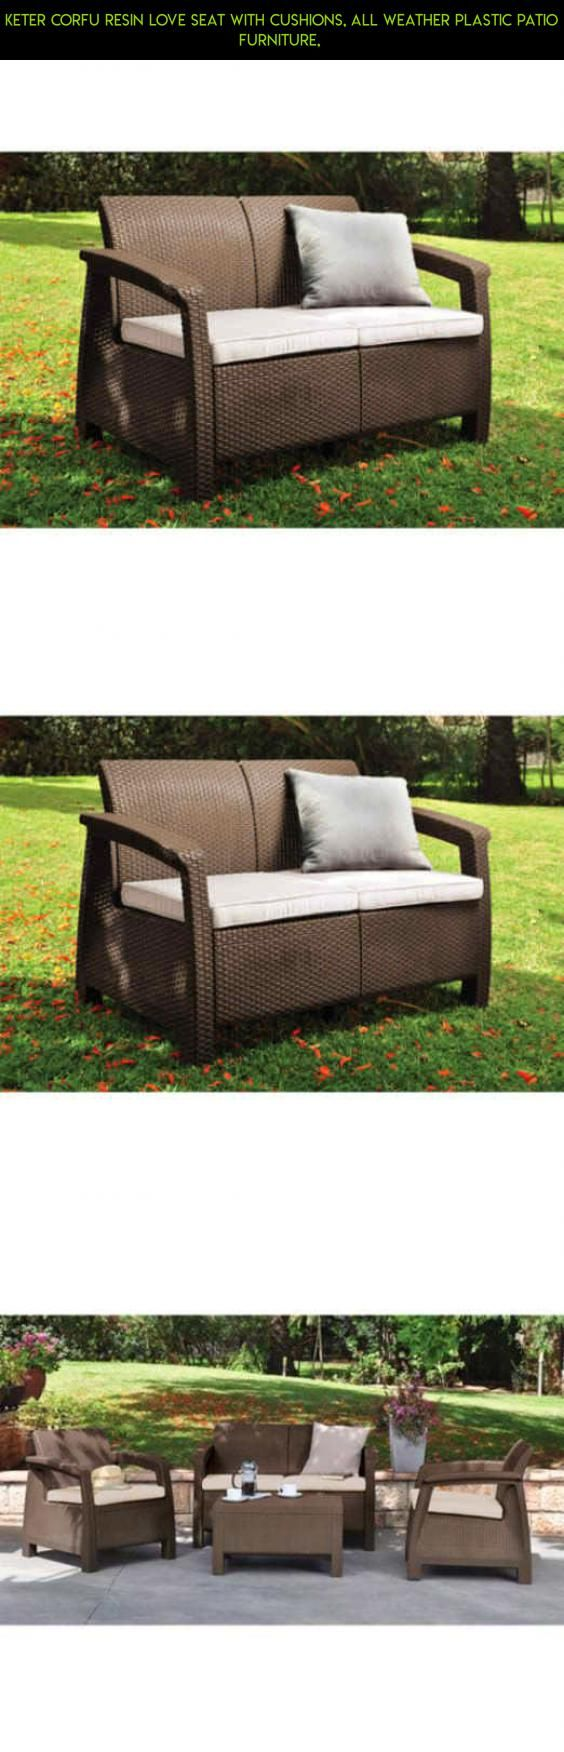 Keter Corfu Resin Love Seat with Cushions, All Weather Plastic Patio Furniture,  #products #keter #parts #corfu #drone #technology #tech #furniture #kit #racing #fpv #gadgets #patio #shopping #plans #camera